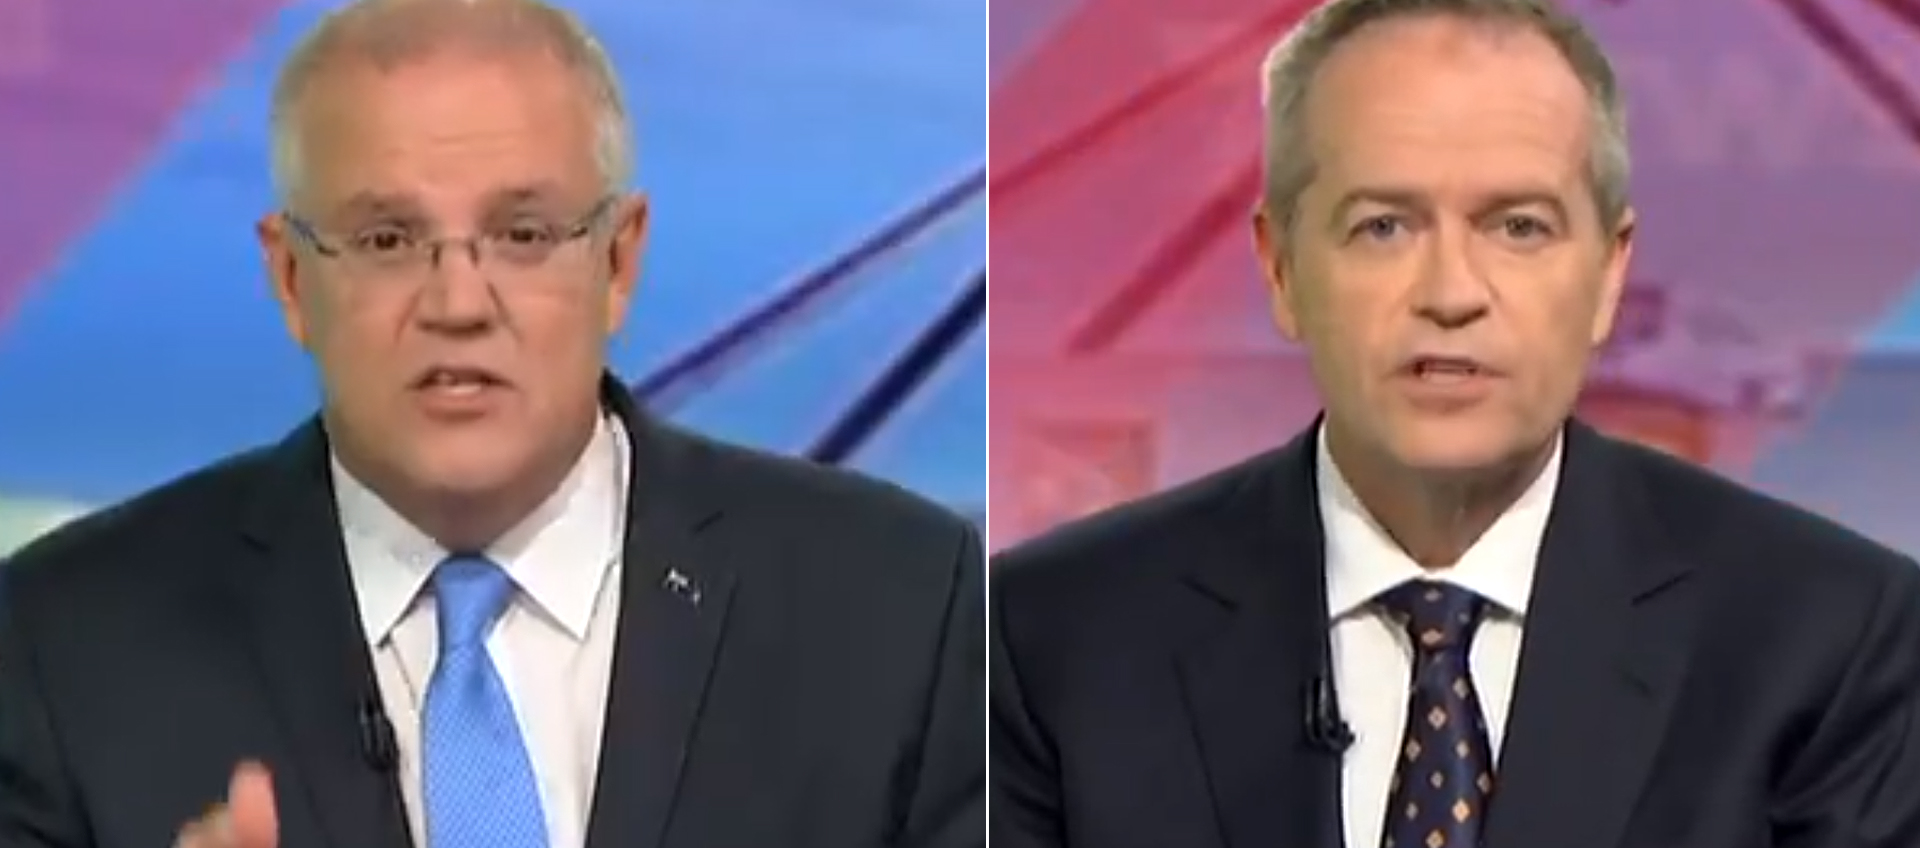 Scott Morrison and Bill Shorten square off in last night's leaders debate in Perth.